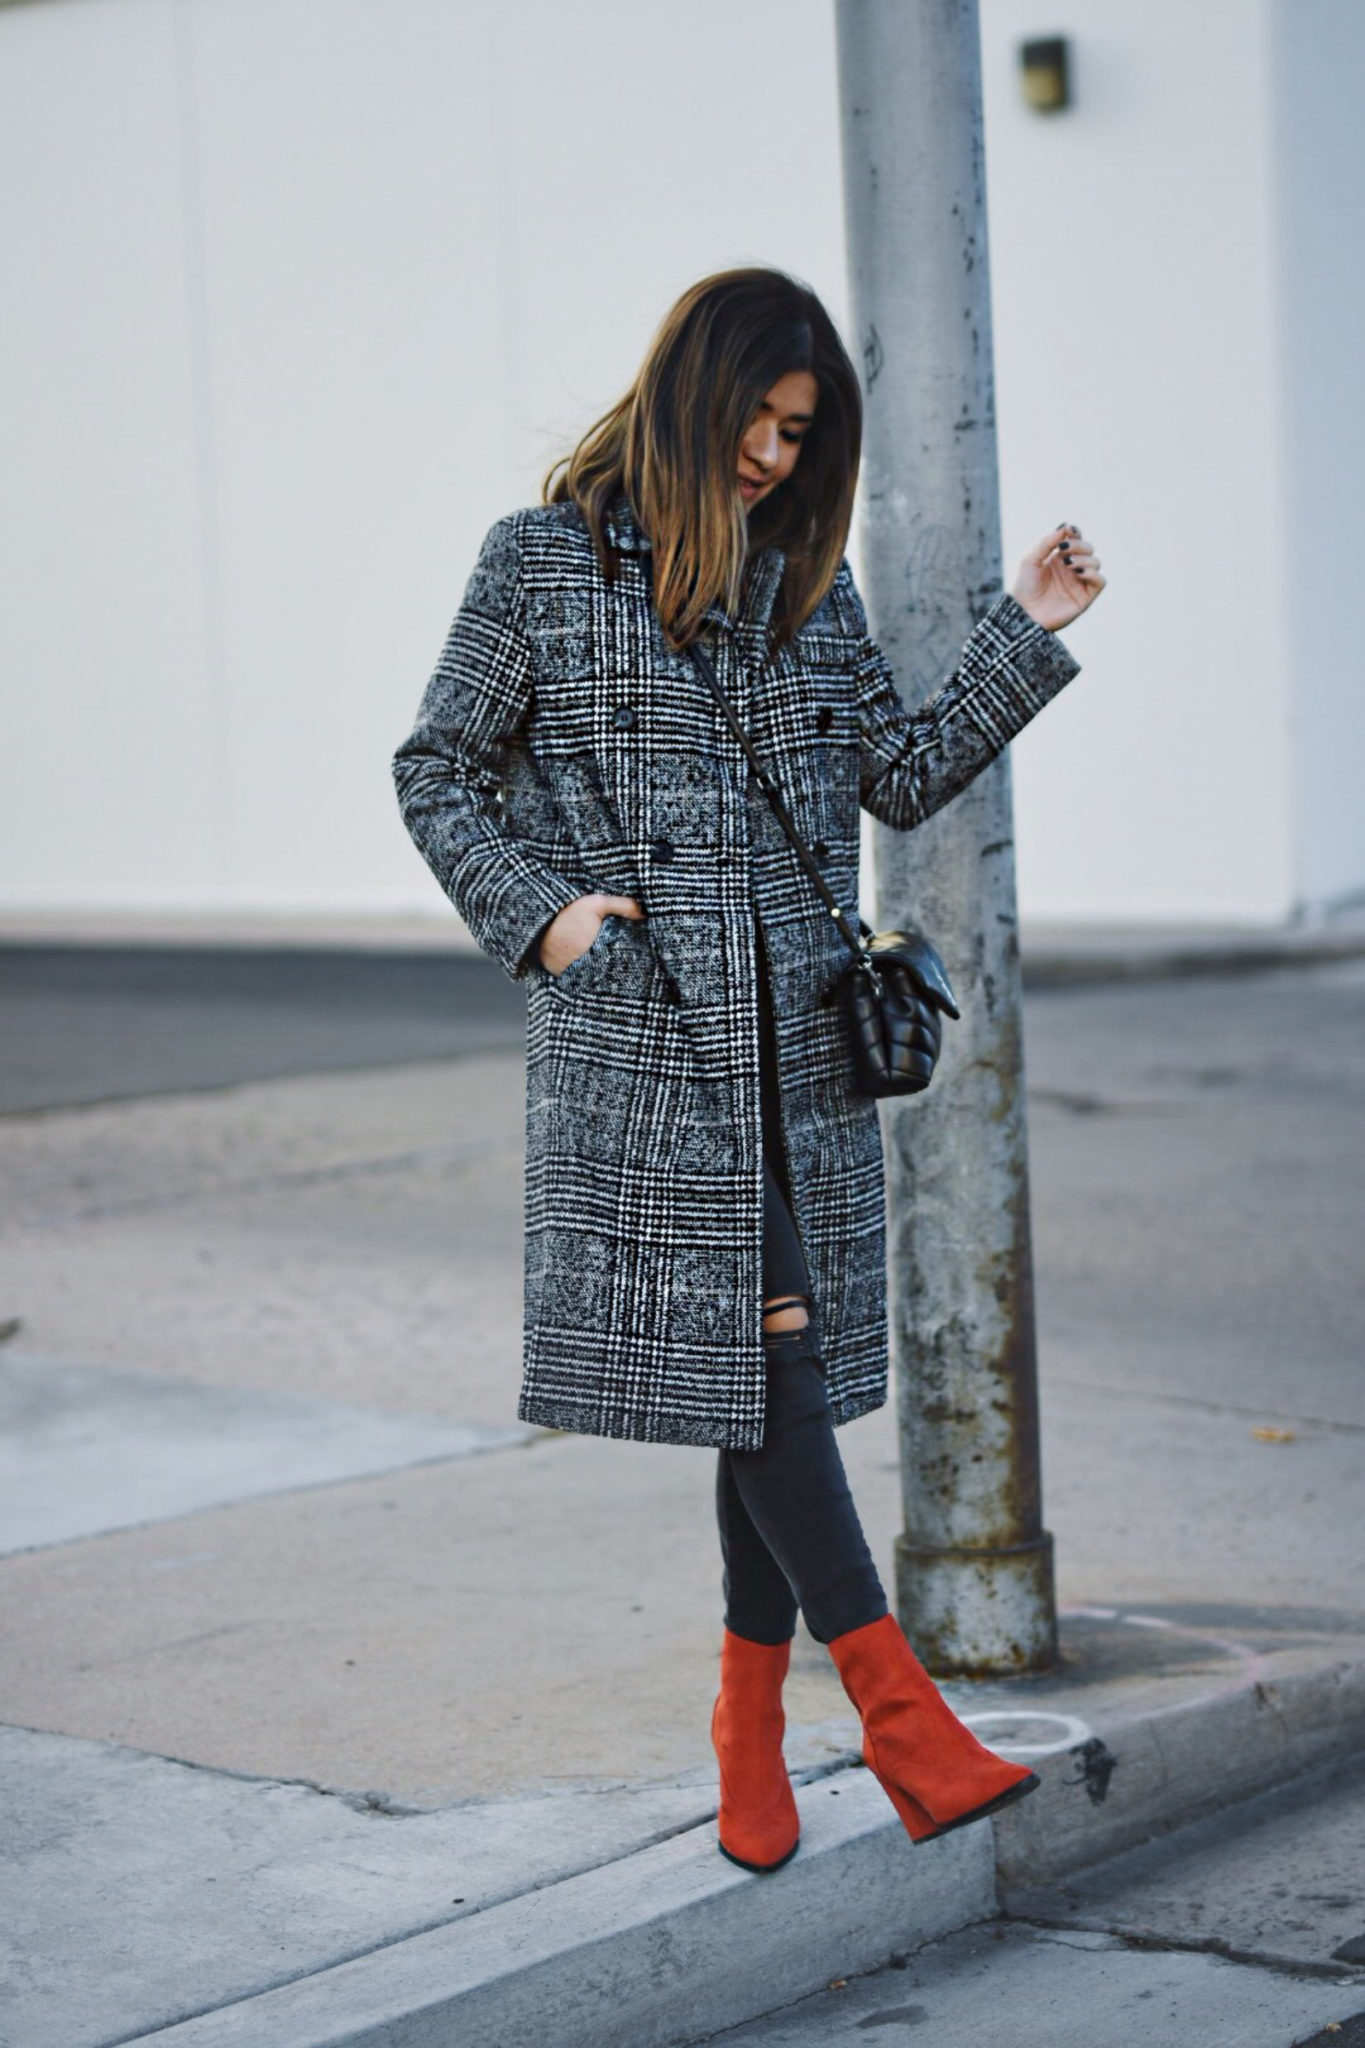 Carolina Hellal of Chic Talk wearing a Shein check print coat, River Island red boots, Madewell jeans and YSL crossbody bag.